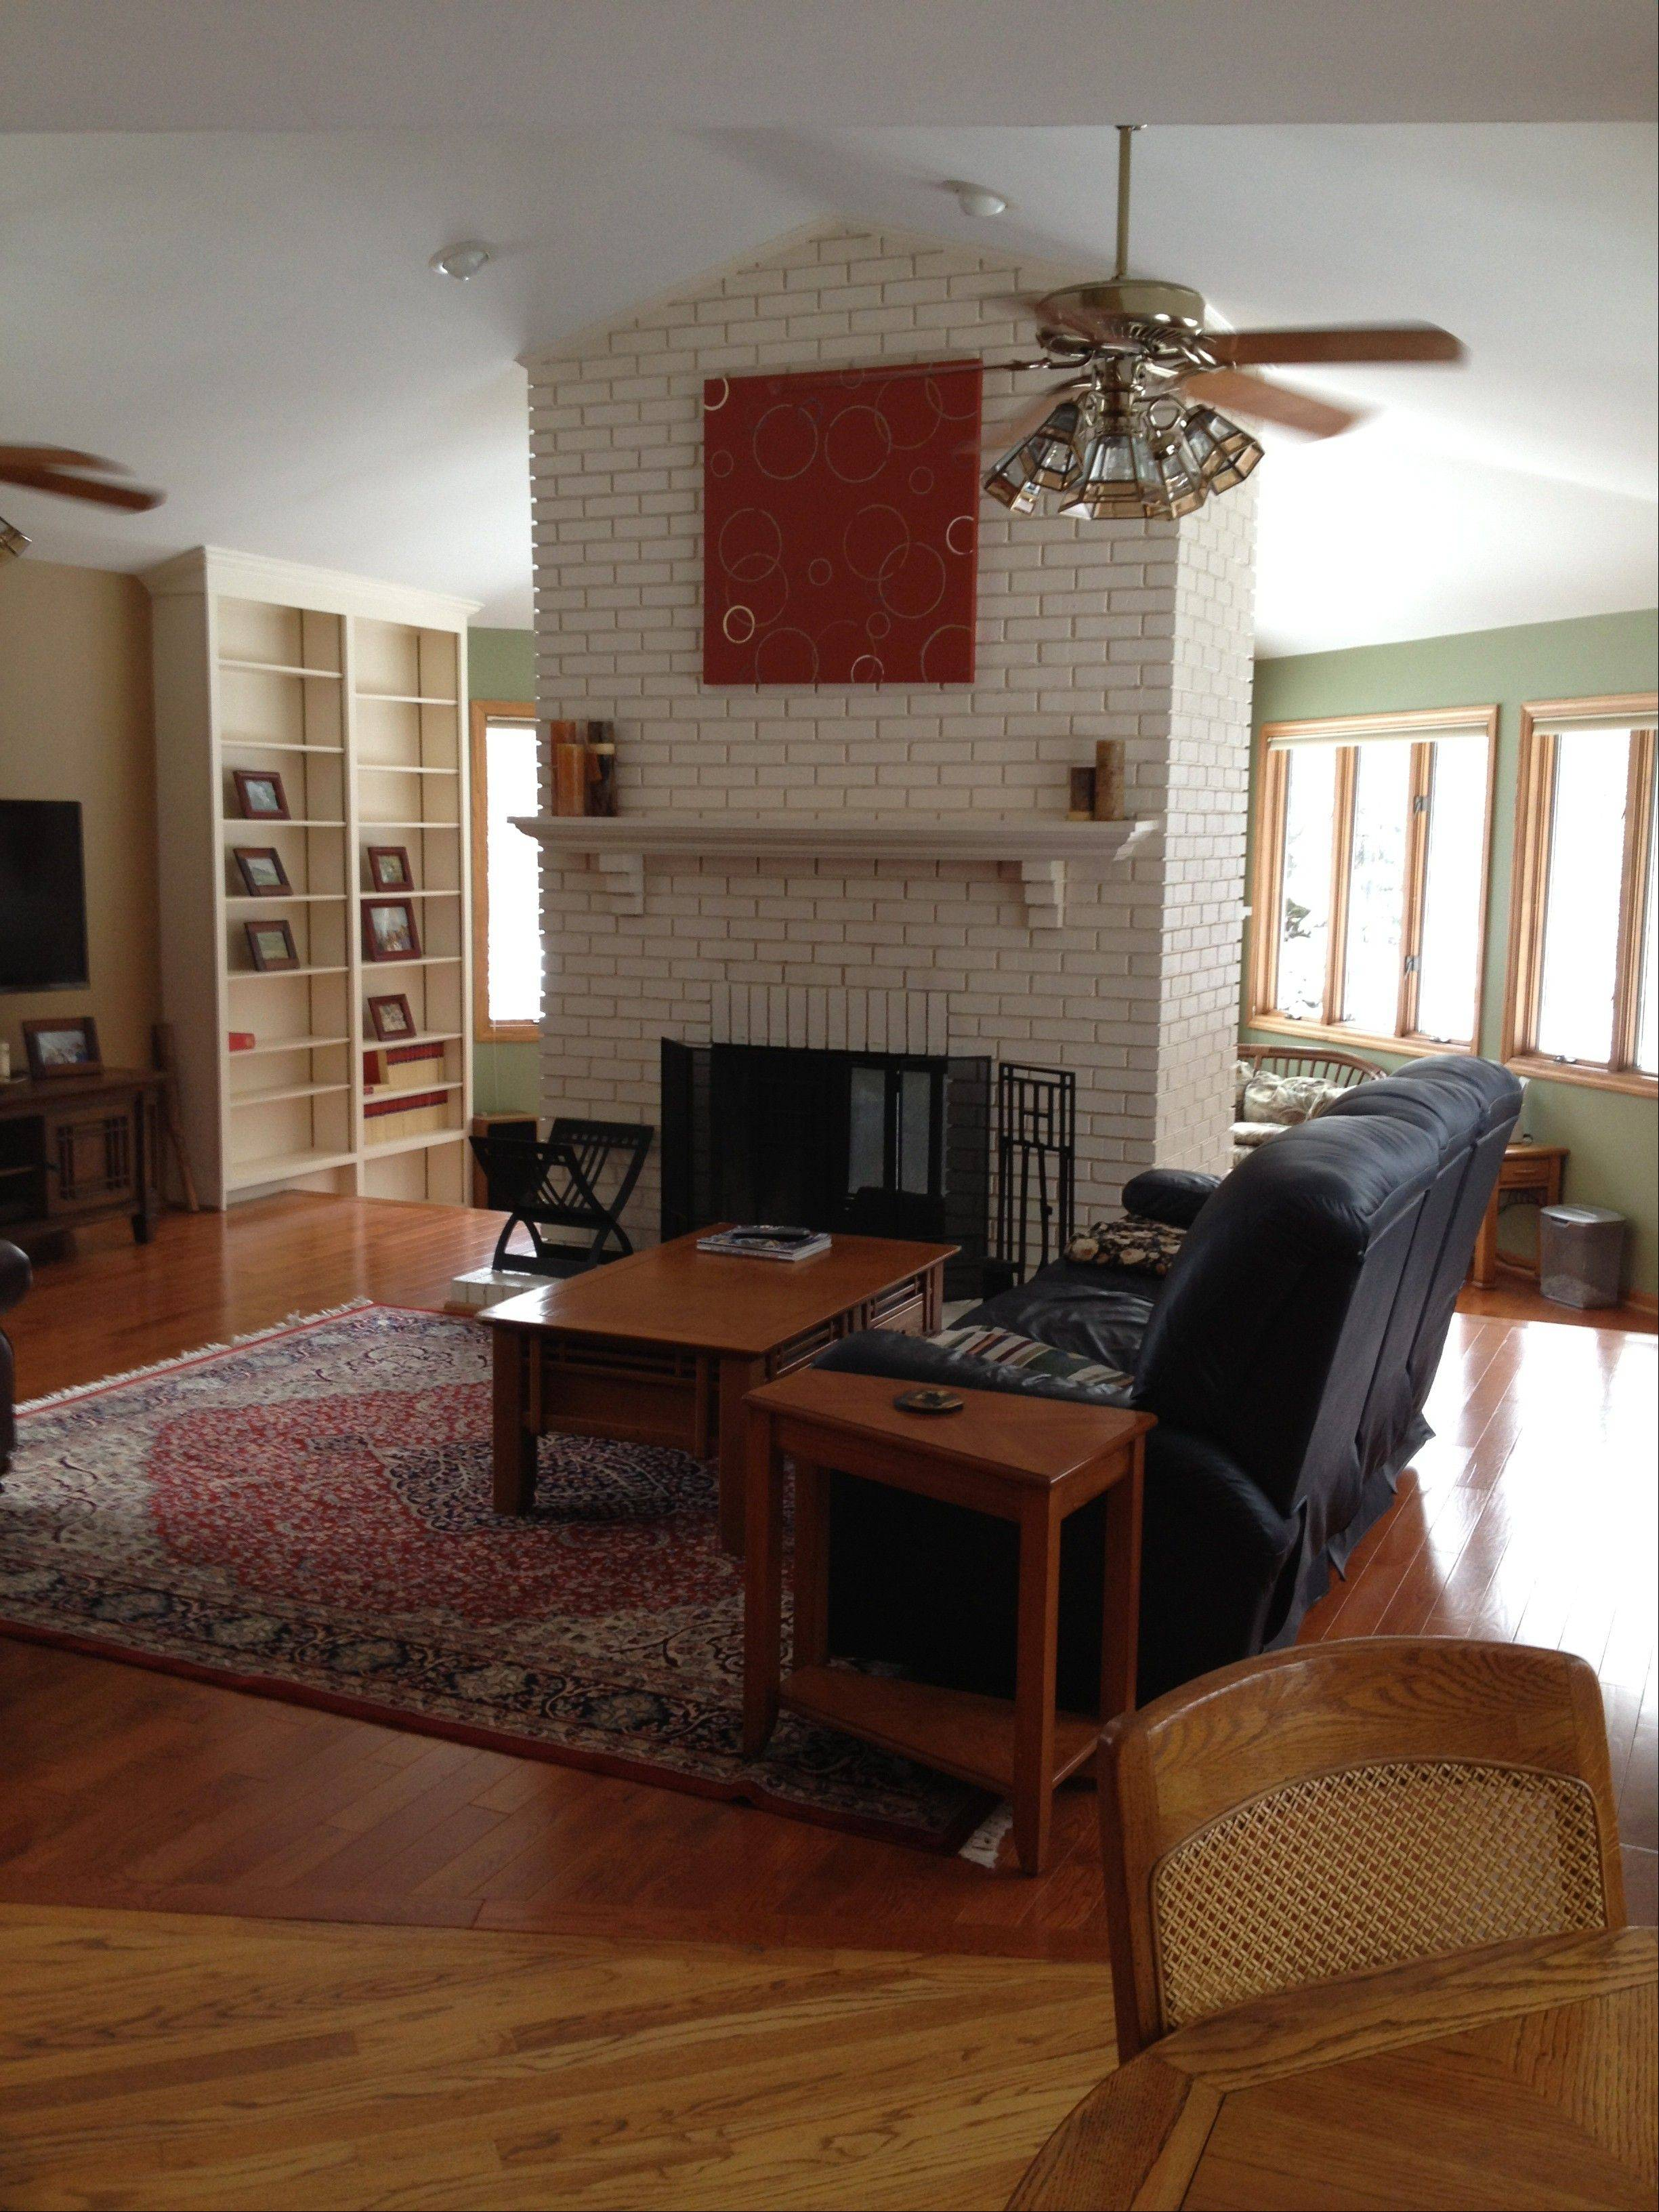 The family room features a double-sided fireplace.